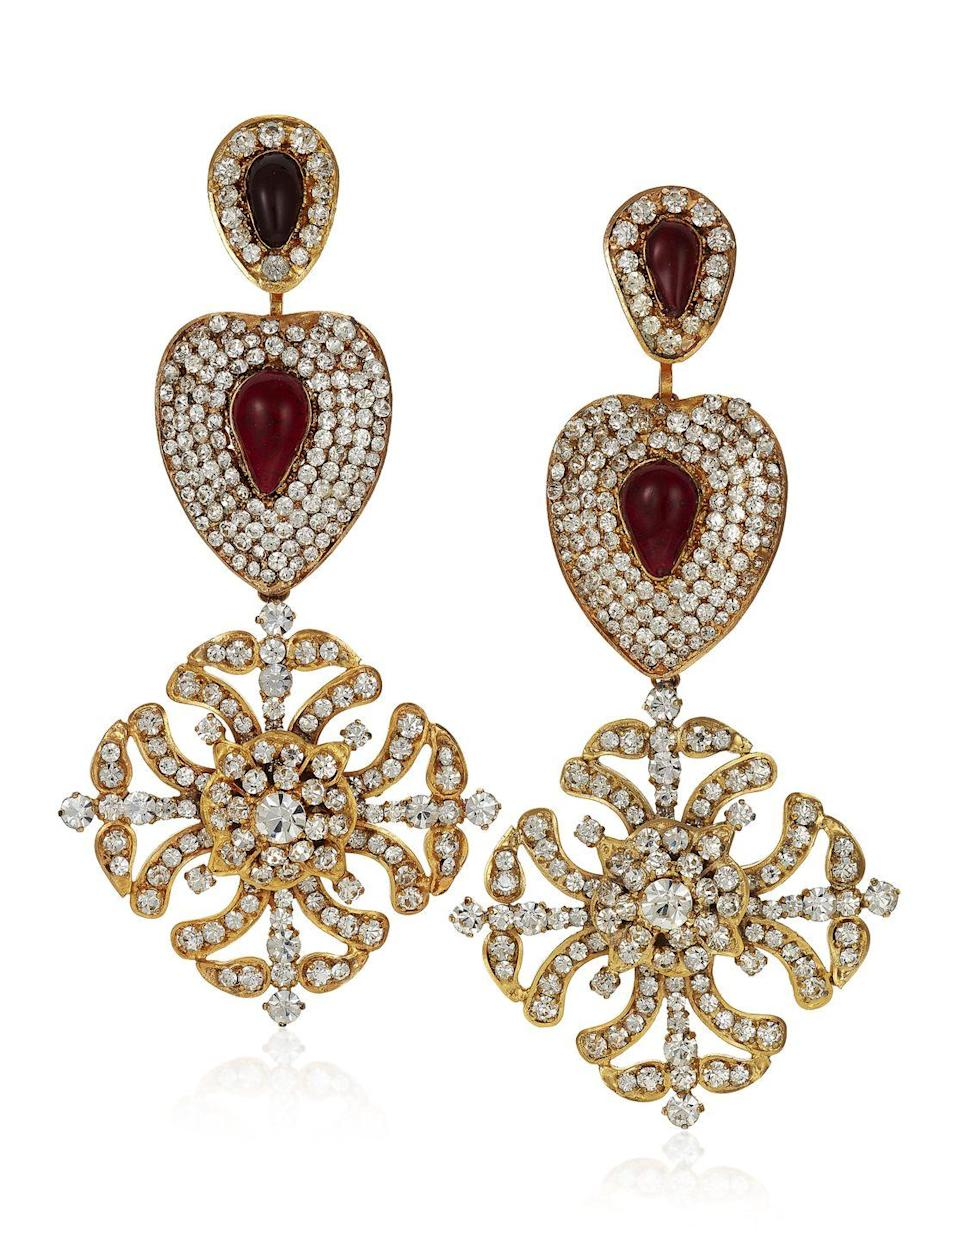 "<p>These knockout earrings are estimated to be worth $1,500 to $2,000.</p><p>Want to see more? Browse the full collection of 106 items on <a href=""https://www.christies.com/en/auction/susan-and-karl-important-chanel-fashion-jewelry-from-the-collection-of-mrs-john-h-gutfreund-19910-nyr/overview"" rel=""nofollow noopener"" target=""_blank"" data-ylk=""slk:Christie's"" class=""link rapid-noclick-resp"">Christie's</a> online auction site. </p>"